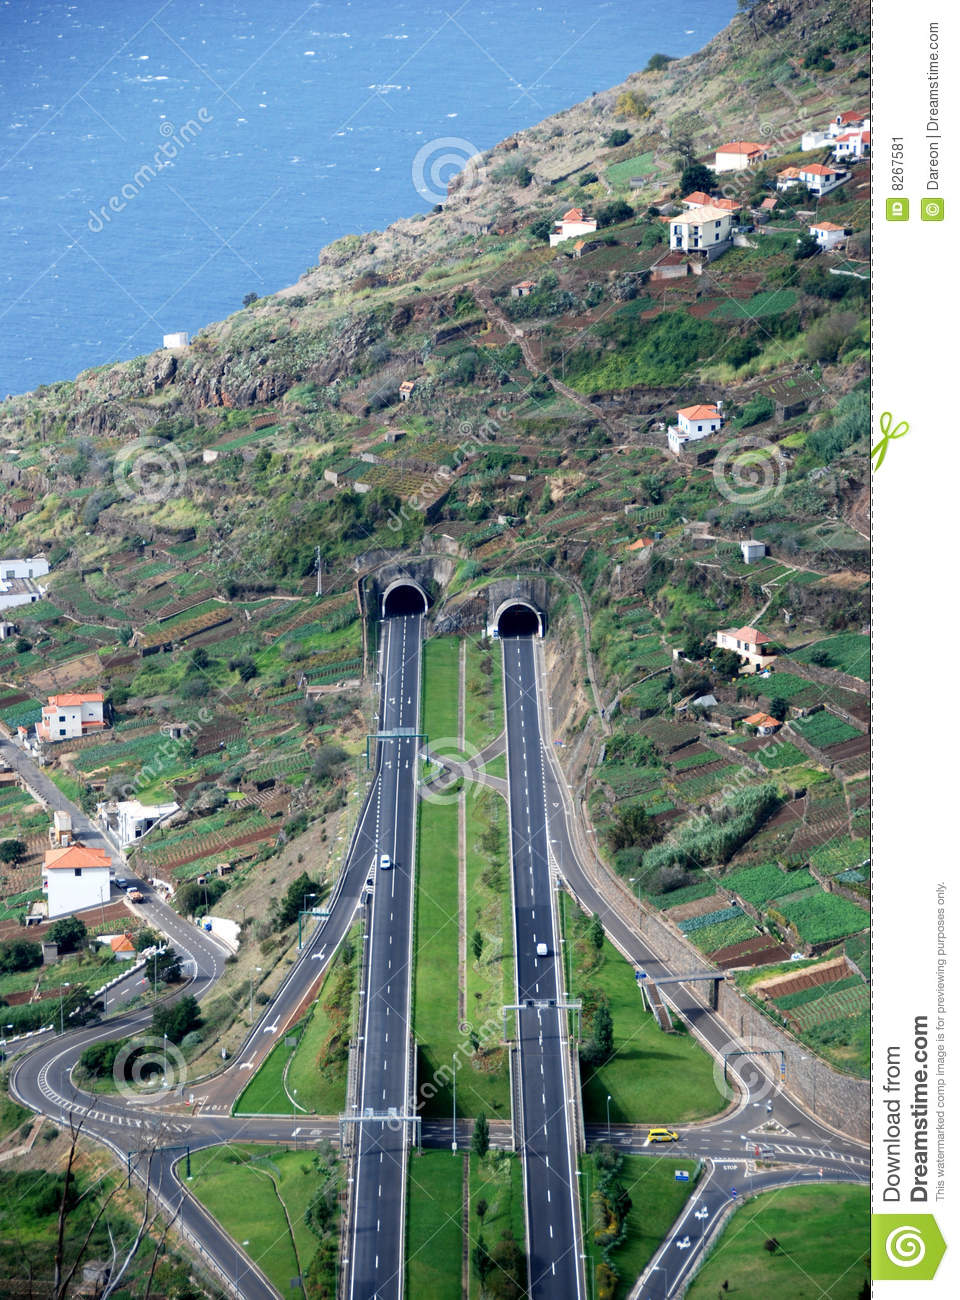 More similar stock images of ` Roads and tunnels on Madeira Island `